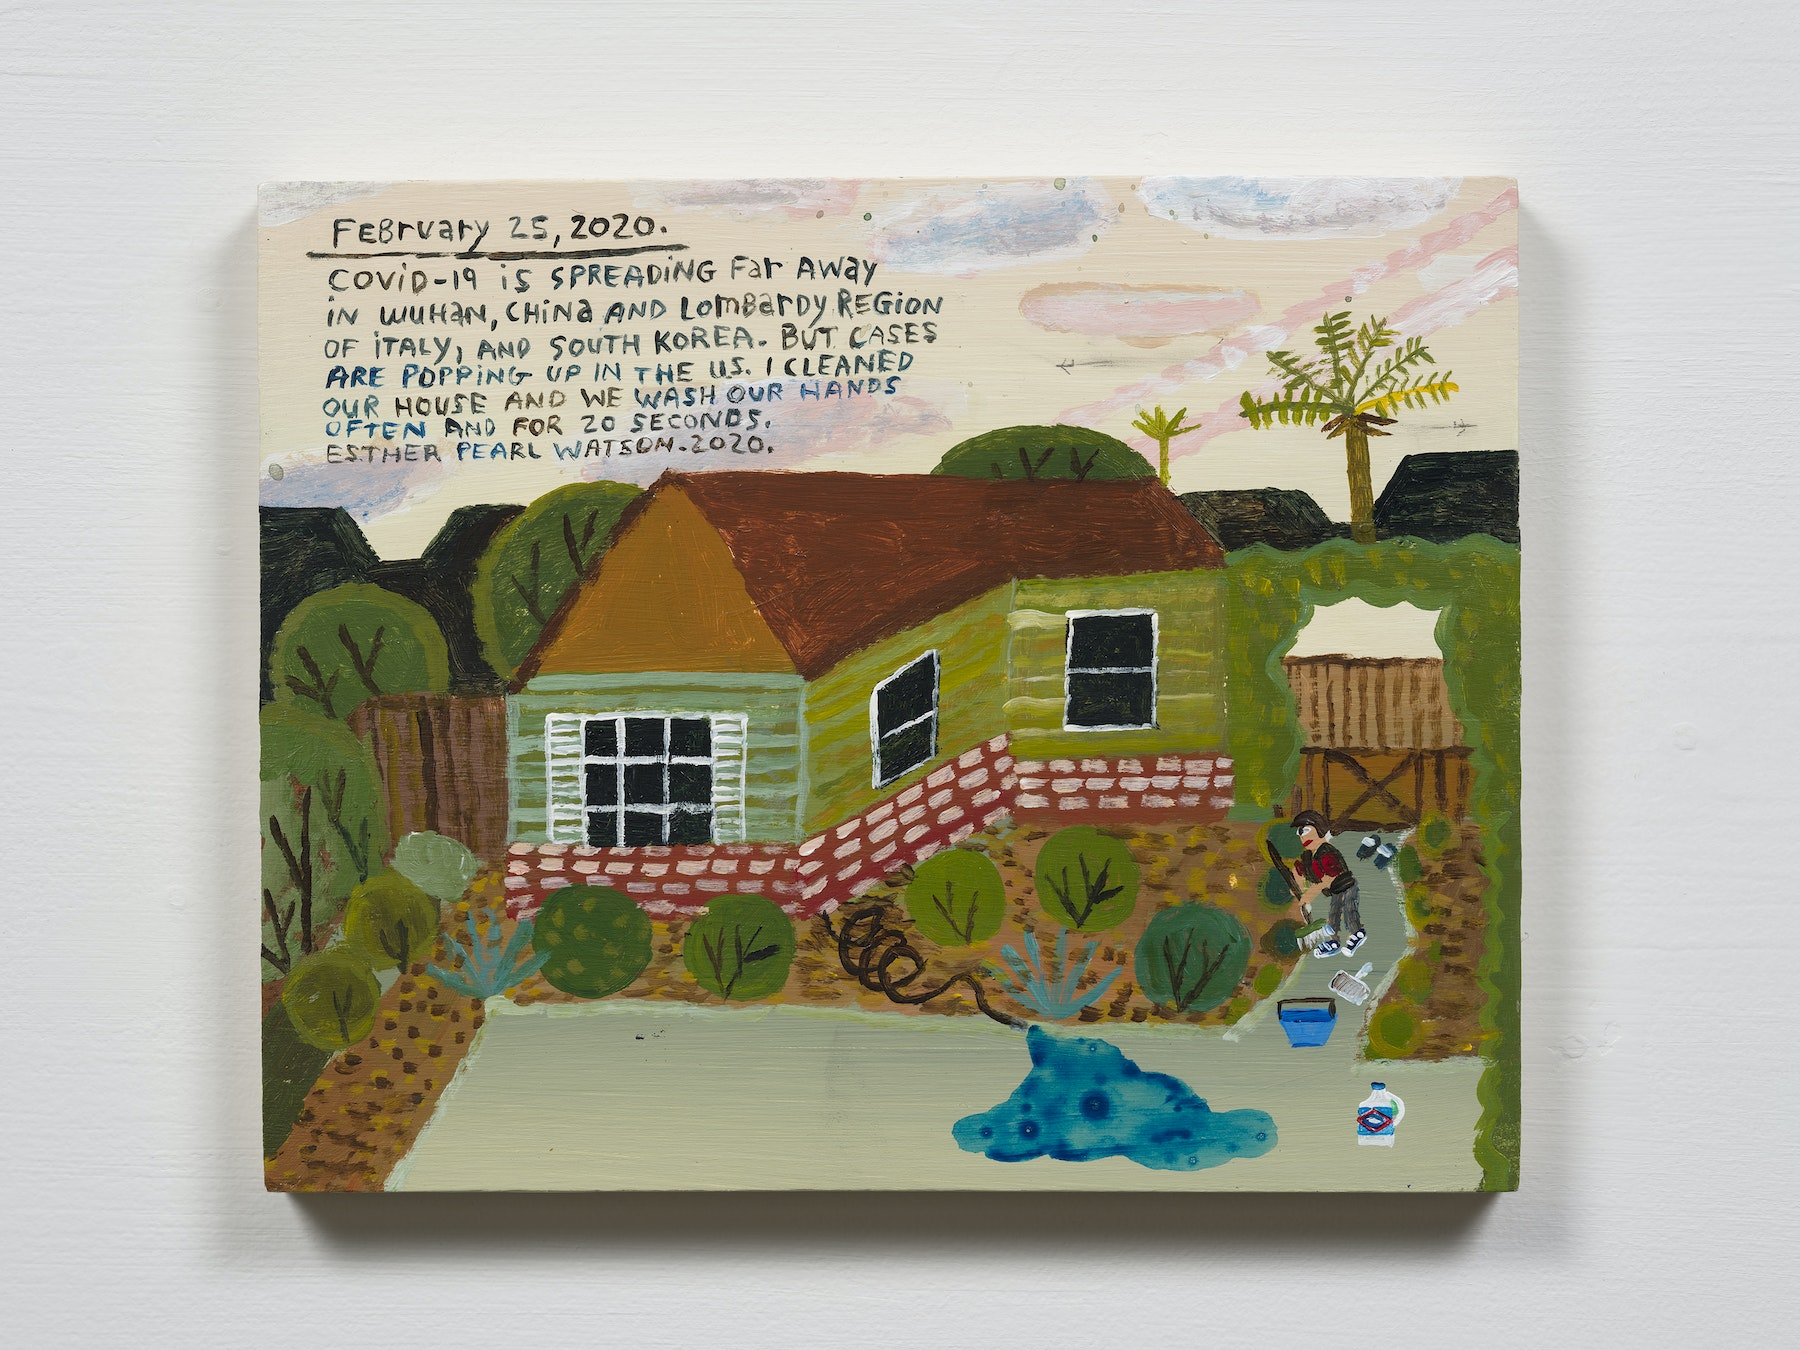 """Esther Pearl Watson """"February 25, Spreading Far Away,"""" 2020 Acrylic with pencil on panel 8 x 10"""" [HxW] (20.32 x 25.4 cm) Inventory #EPW233 Courtesy of the artist and Vielmetter Los Angeles Photo credit: Jeff Mclane"""